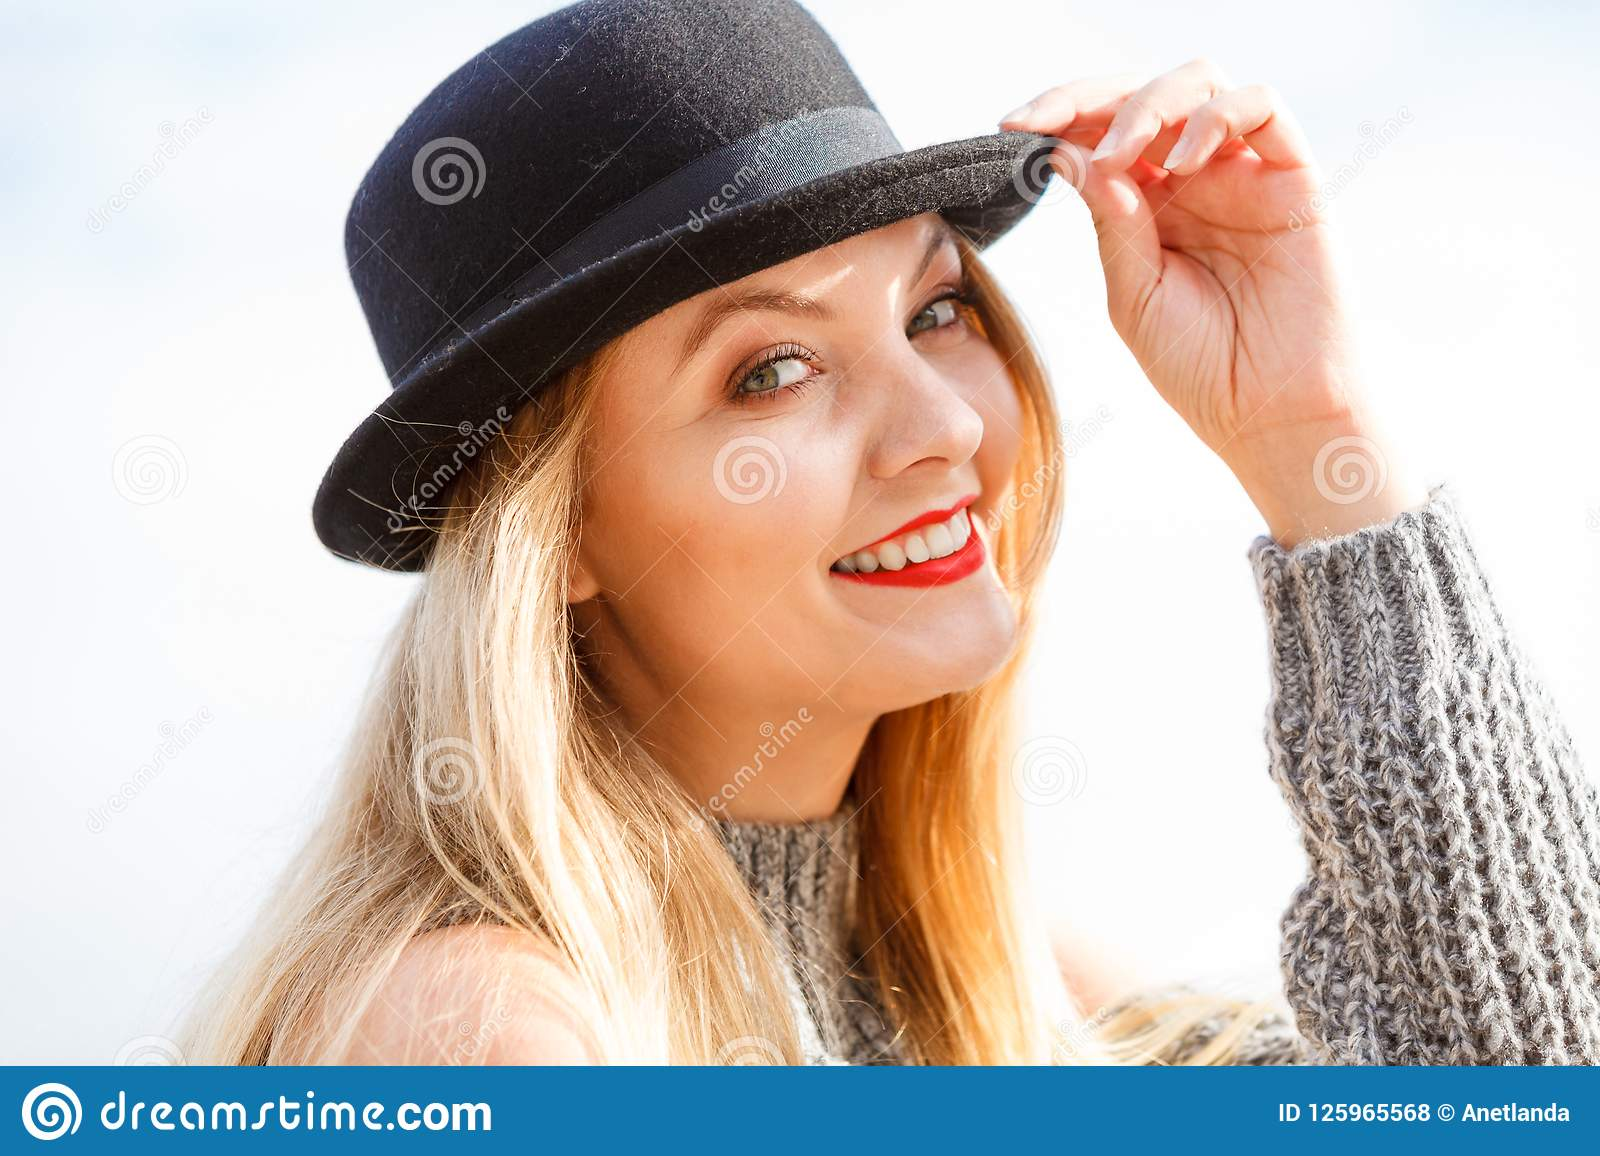 795bebd9 Beautiful young blonde woman wearing fedora hat and sweater jumper posing  on sky background.